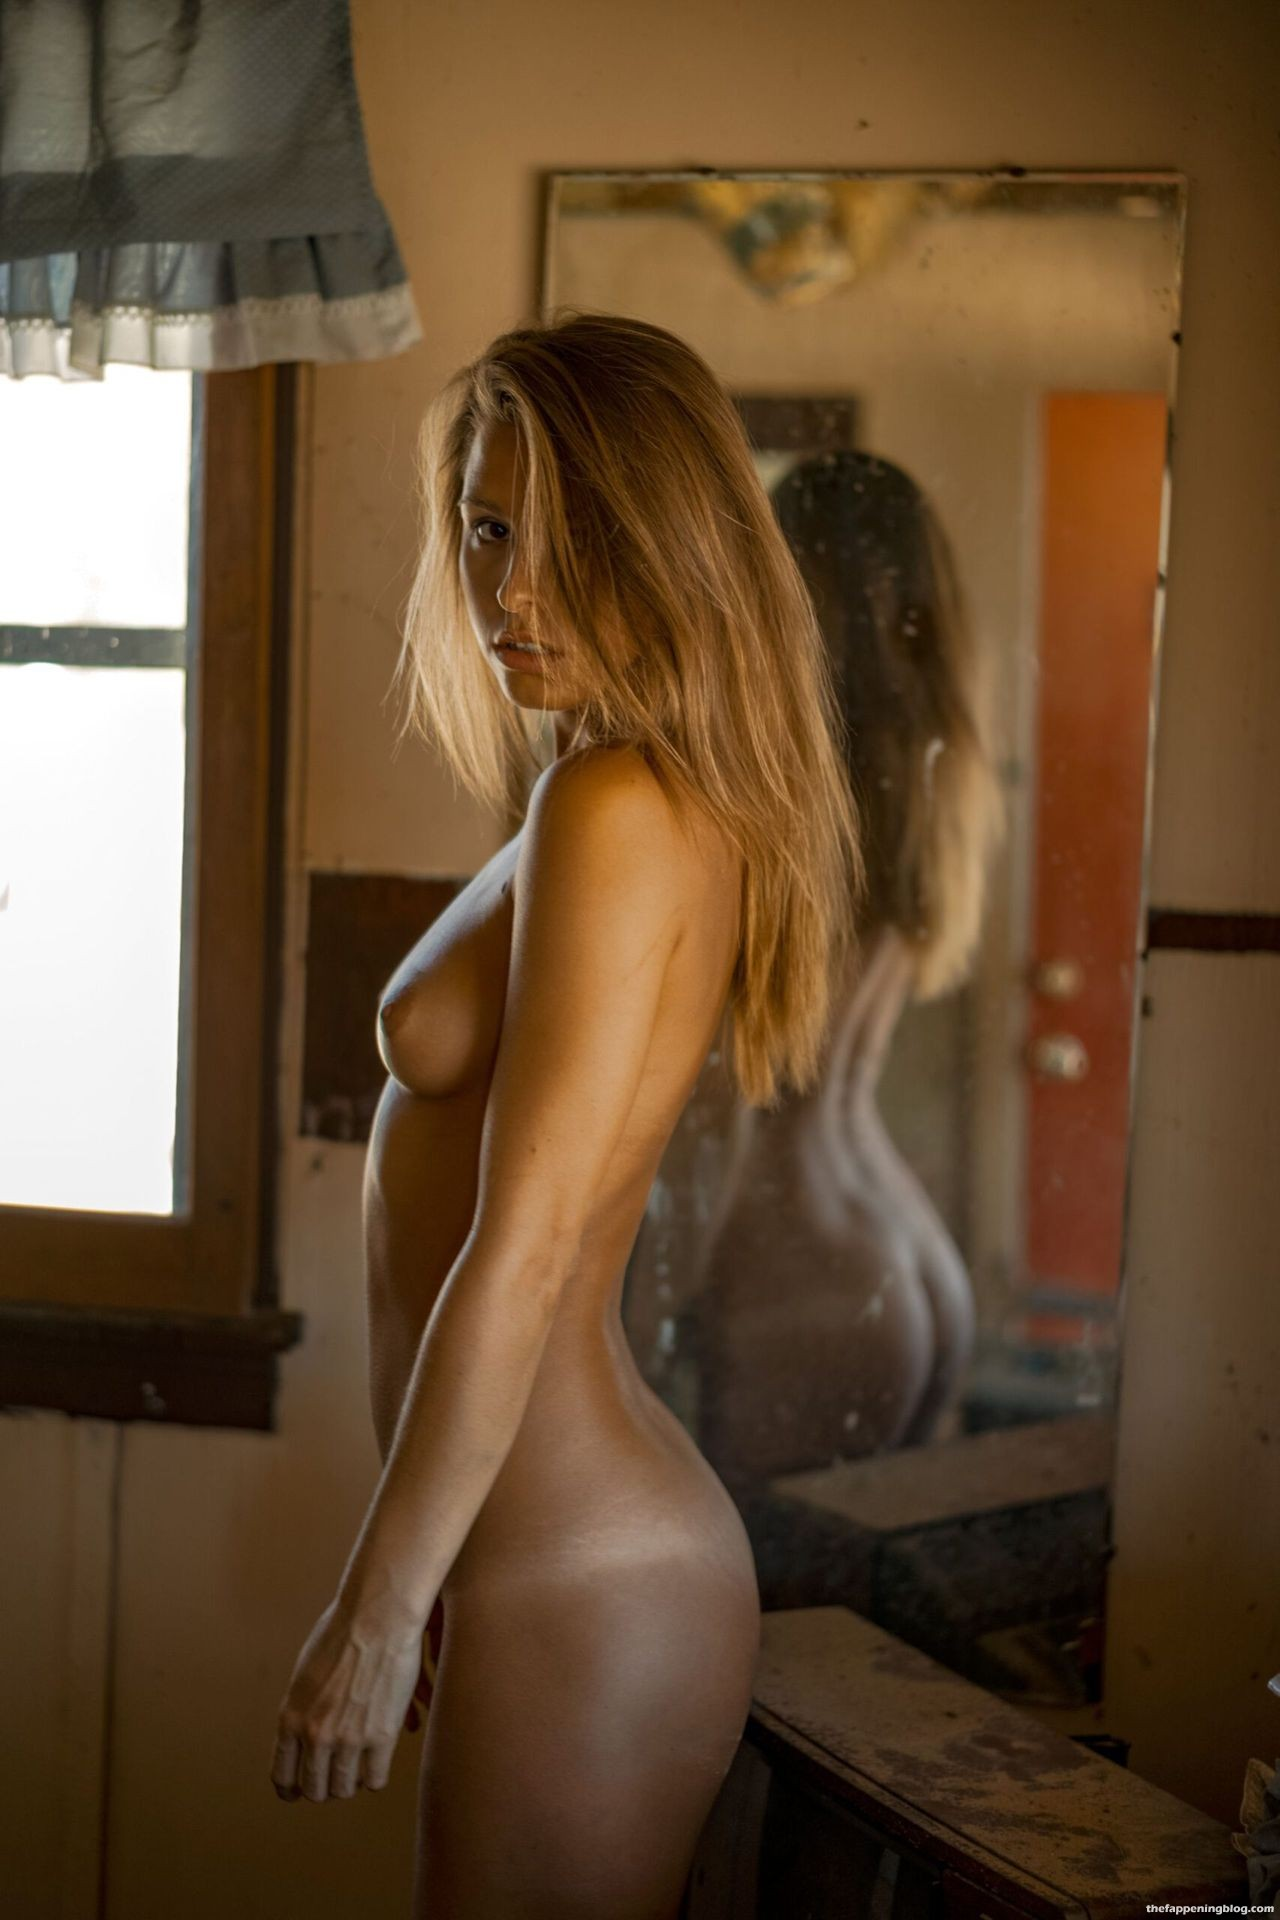 Marisa-Papen-Stunning-Naked-Body-9-scaled1-thefappeningblog.com_.jpg